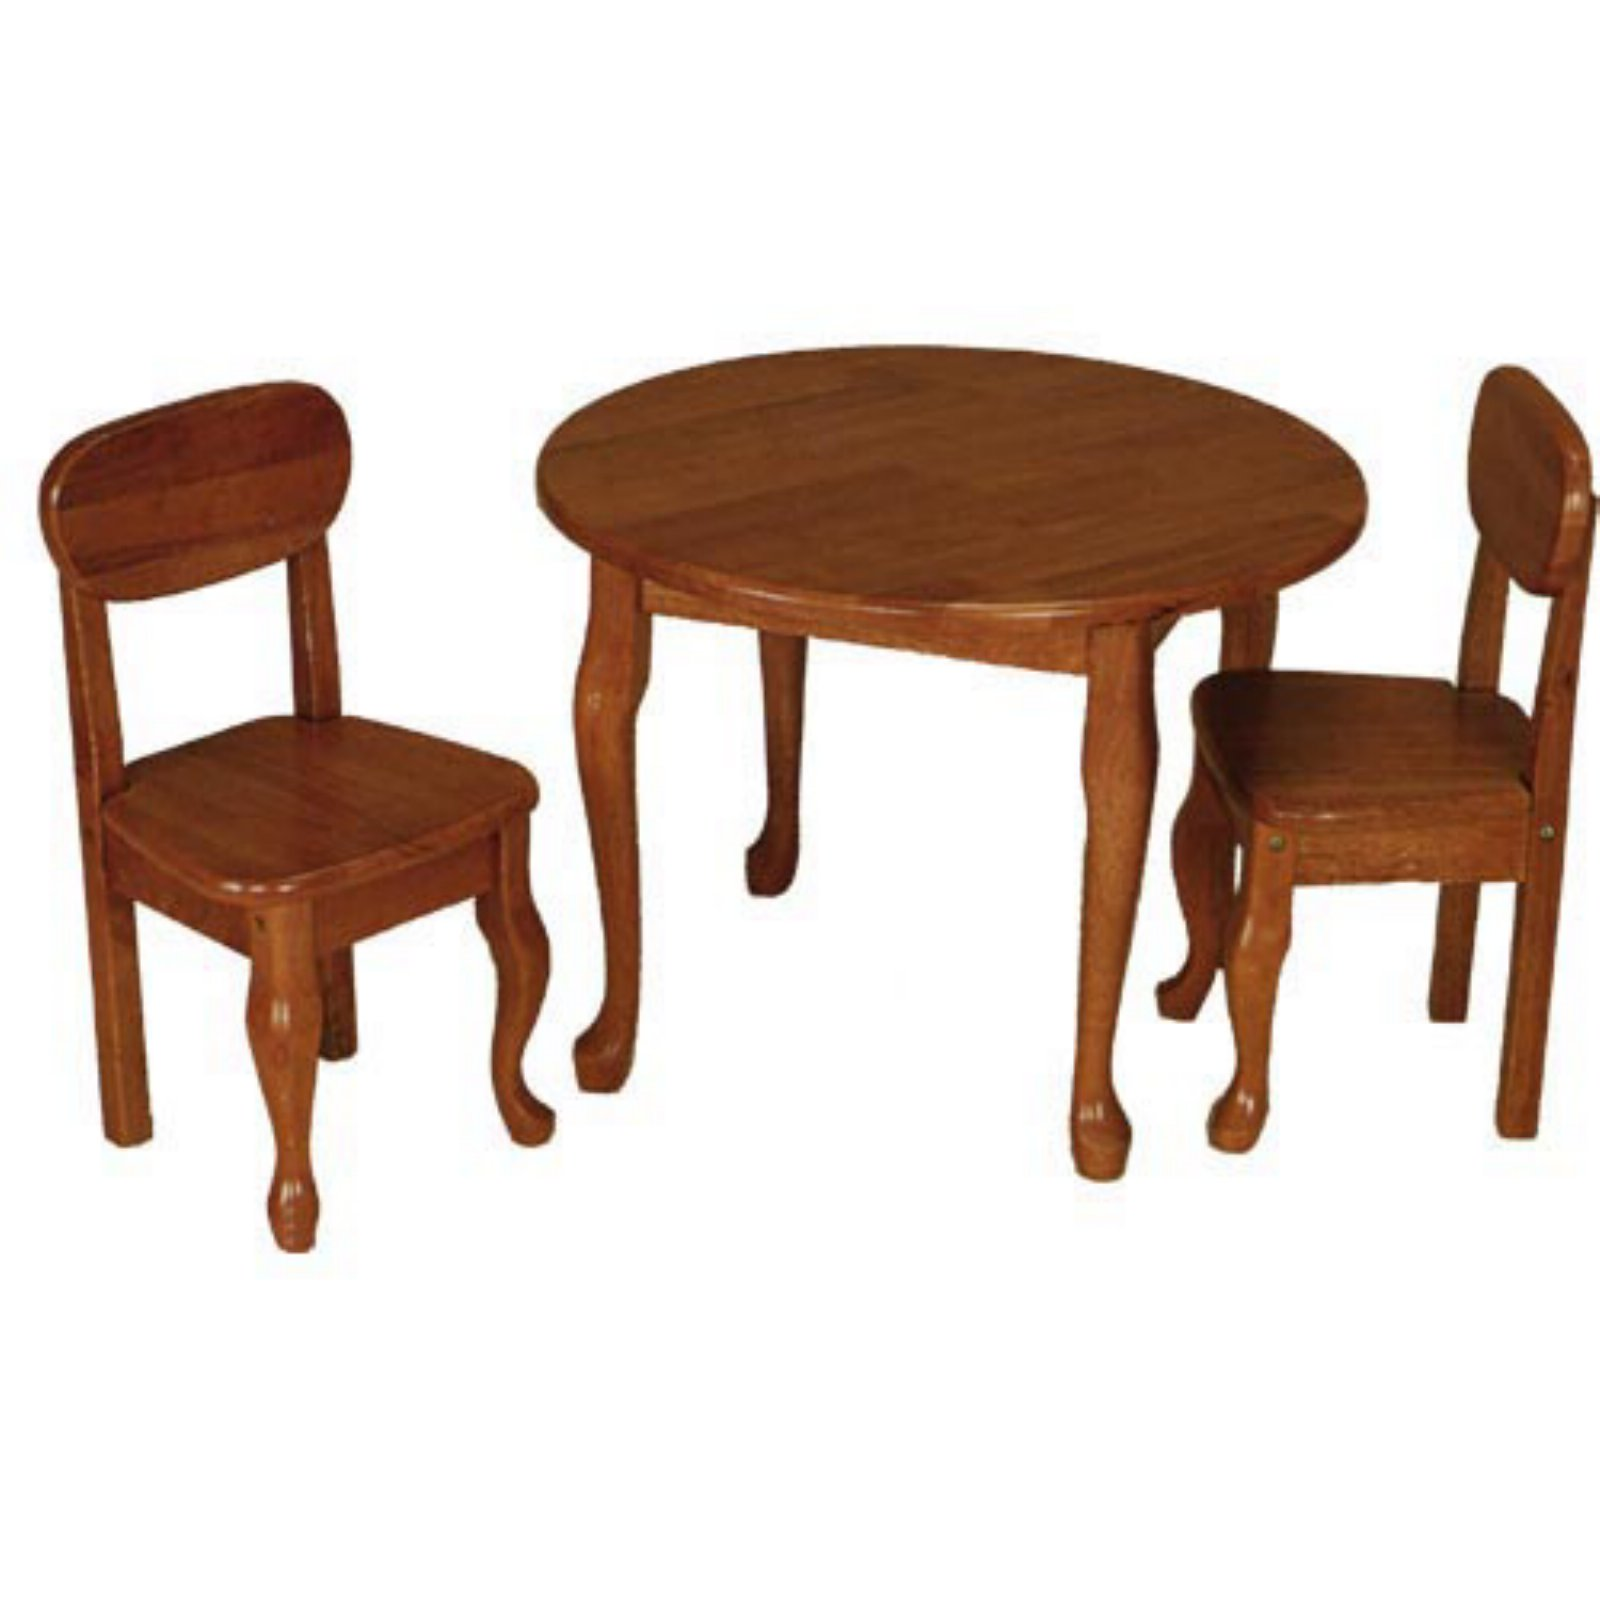 Wicker bathroom accessory sets - Gift Mark Queen Anne Round Table And Chair Set Shop At